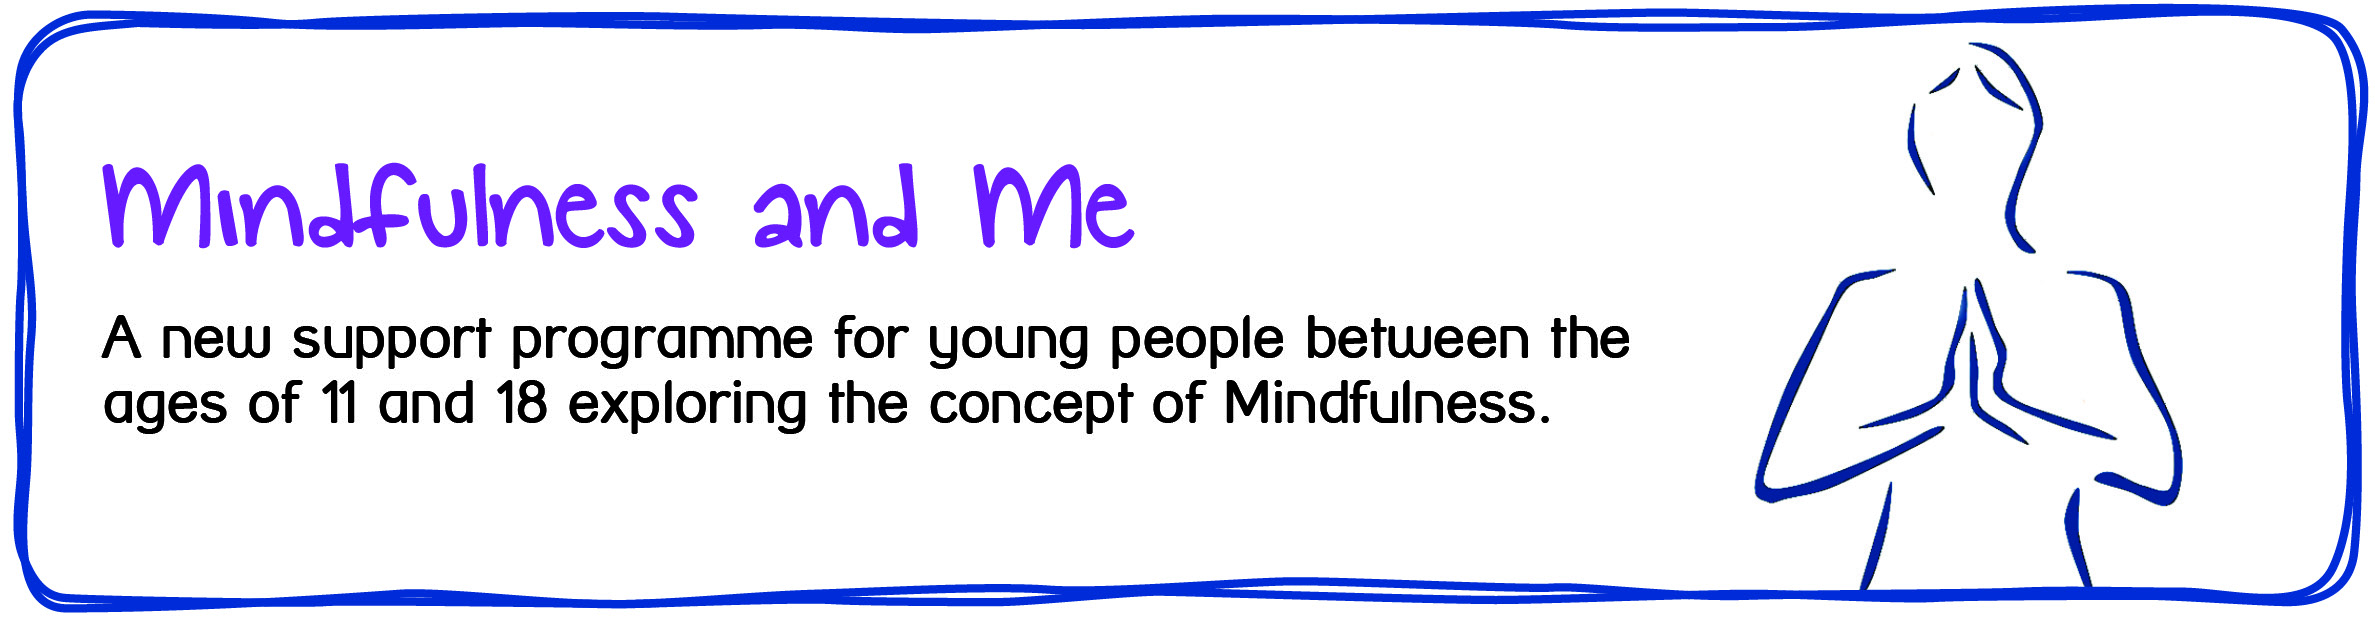 Youth Services - Mindfulness and Me. A new support programme for young people between the ages of 11 and 18 exploring the concept of mindfulness.